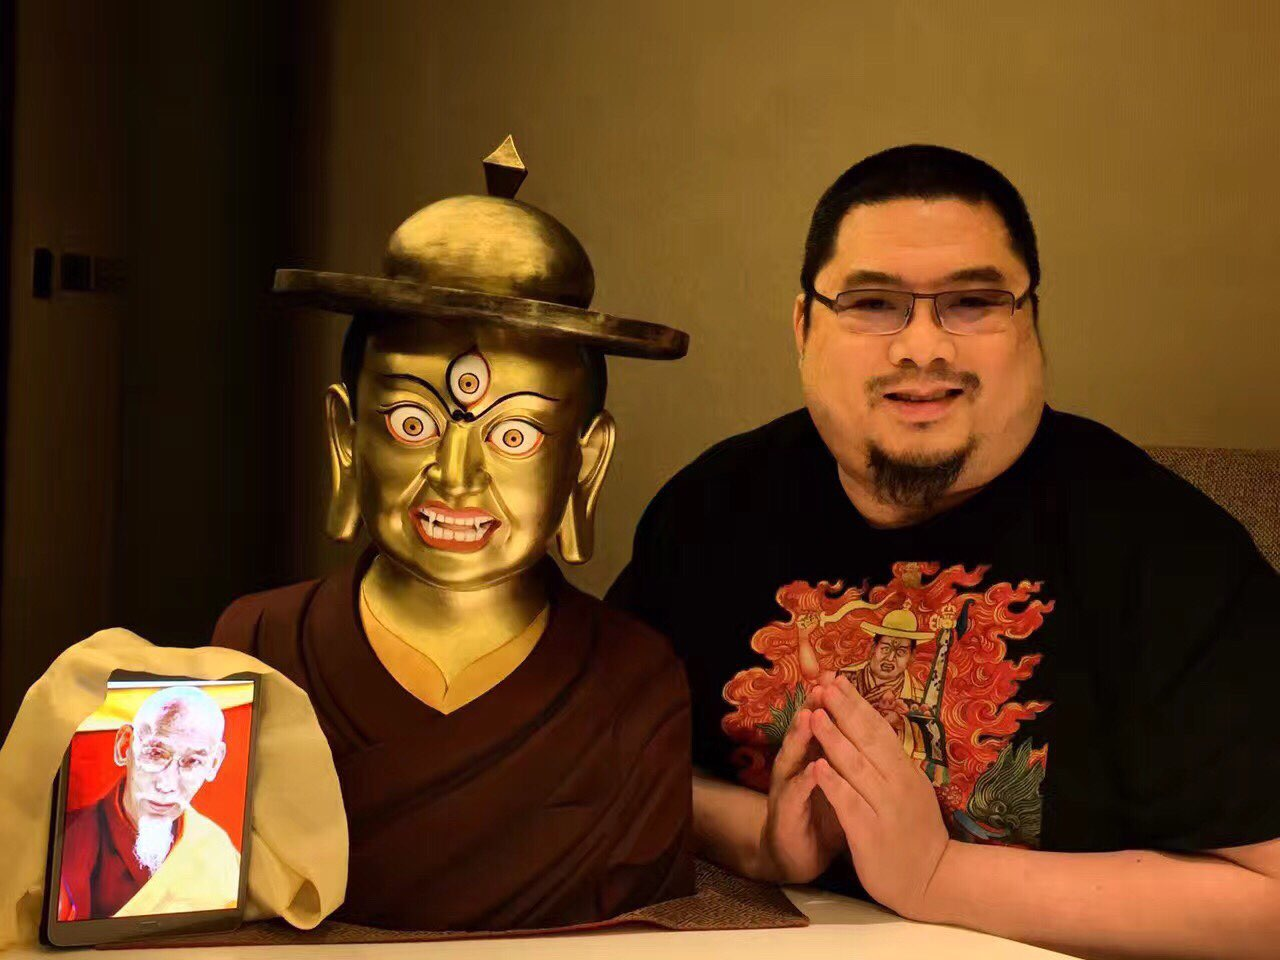 Rinpoche's relationship with Kyabje Zong Rinpoche and Dorje Shugden is rock-solid